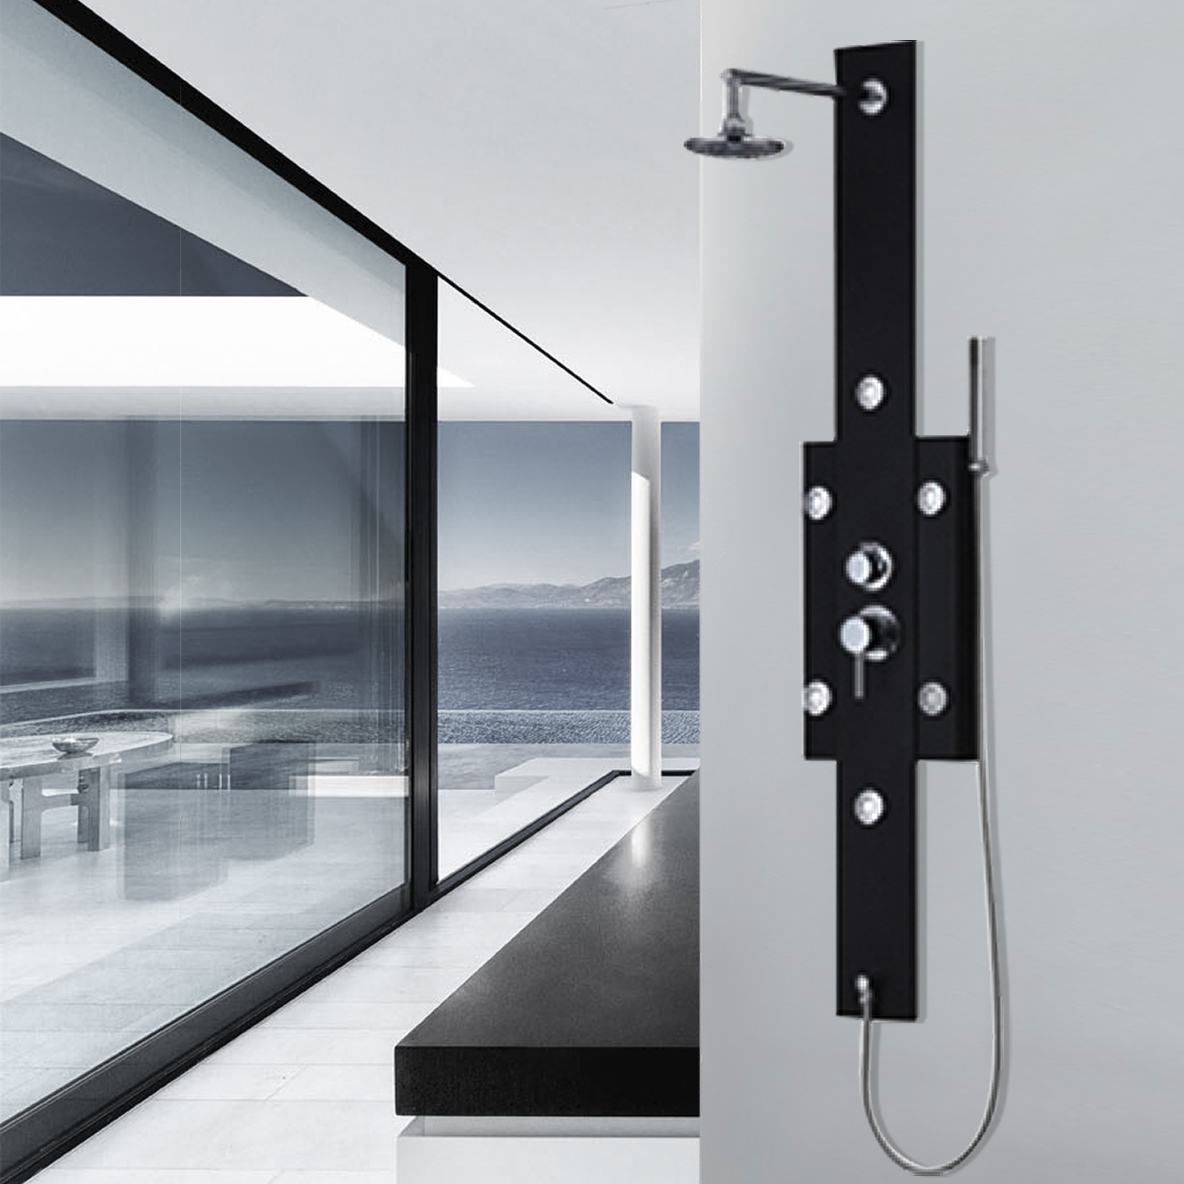 Fontana Arcadia stainless steel shower panels